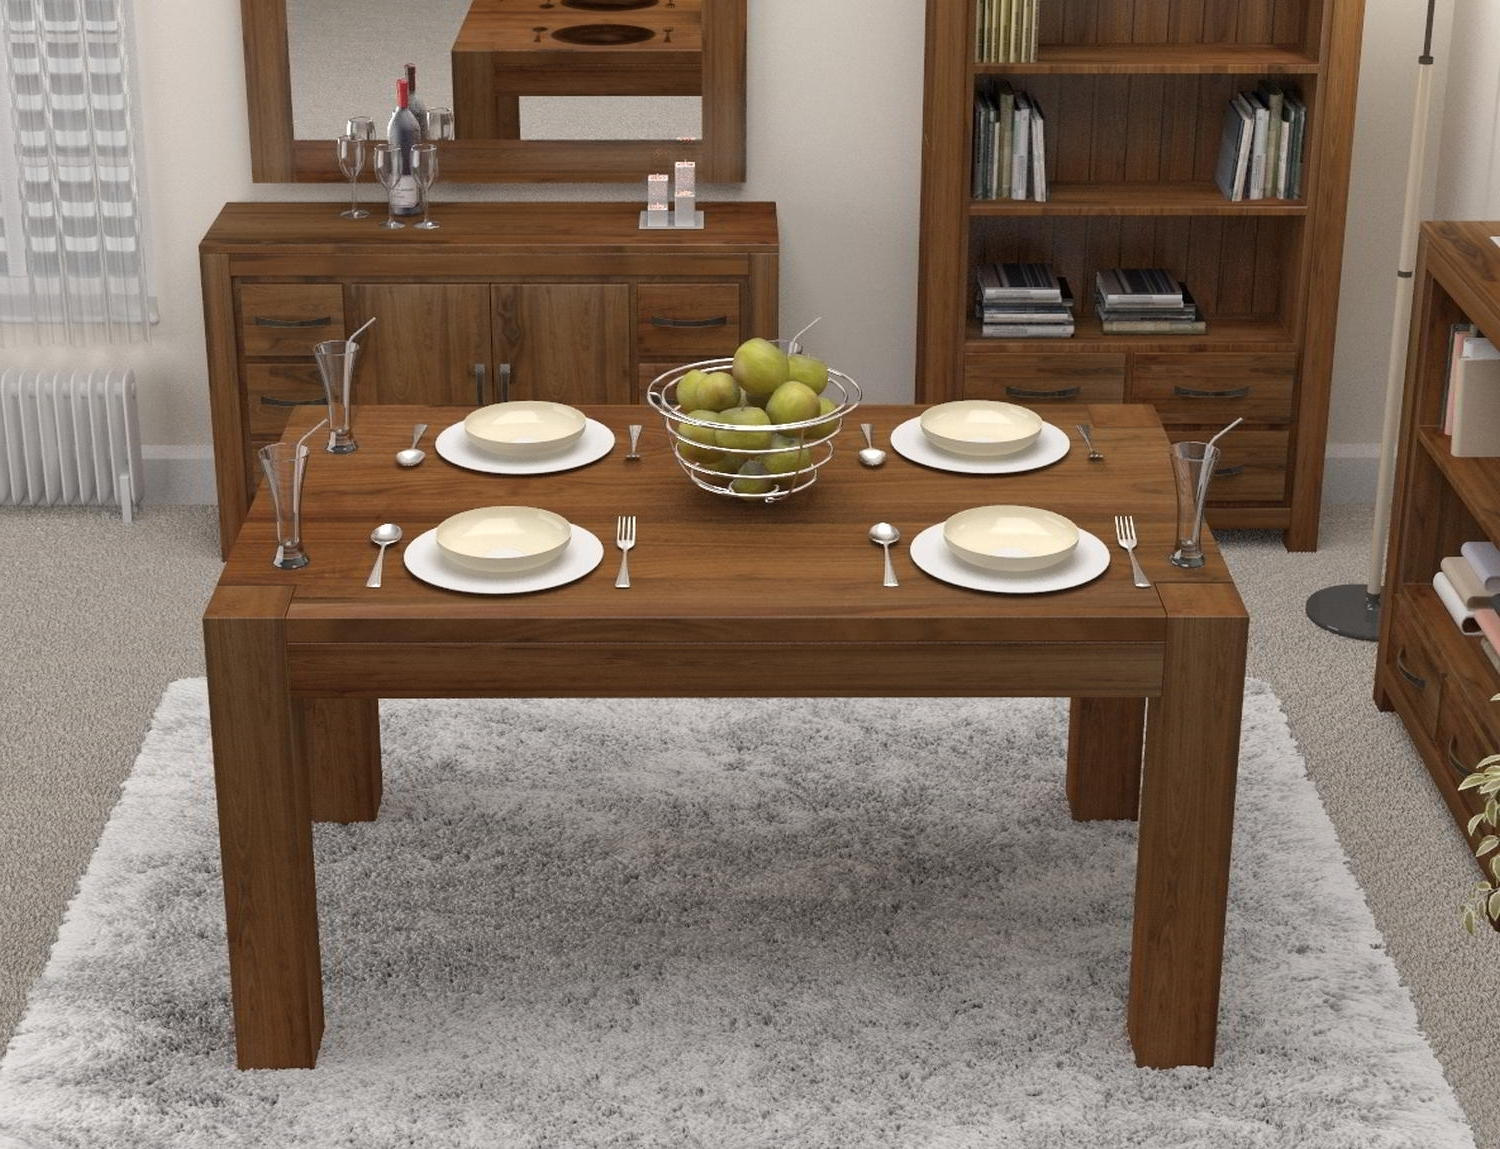 4 Seat Dining Tables inside Most Popular Linea Solid Walnut Home Dining Room Furniture Four Seater Dining